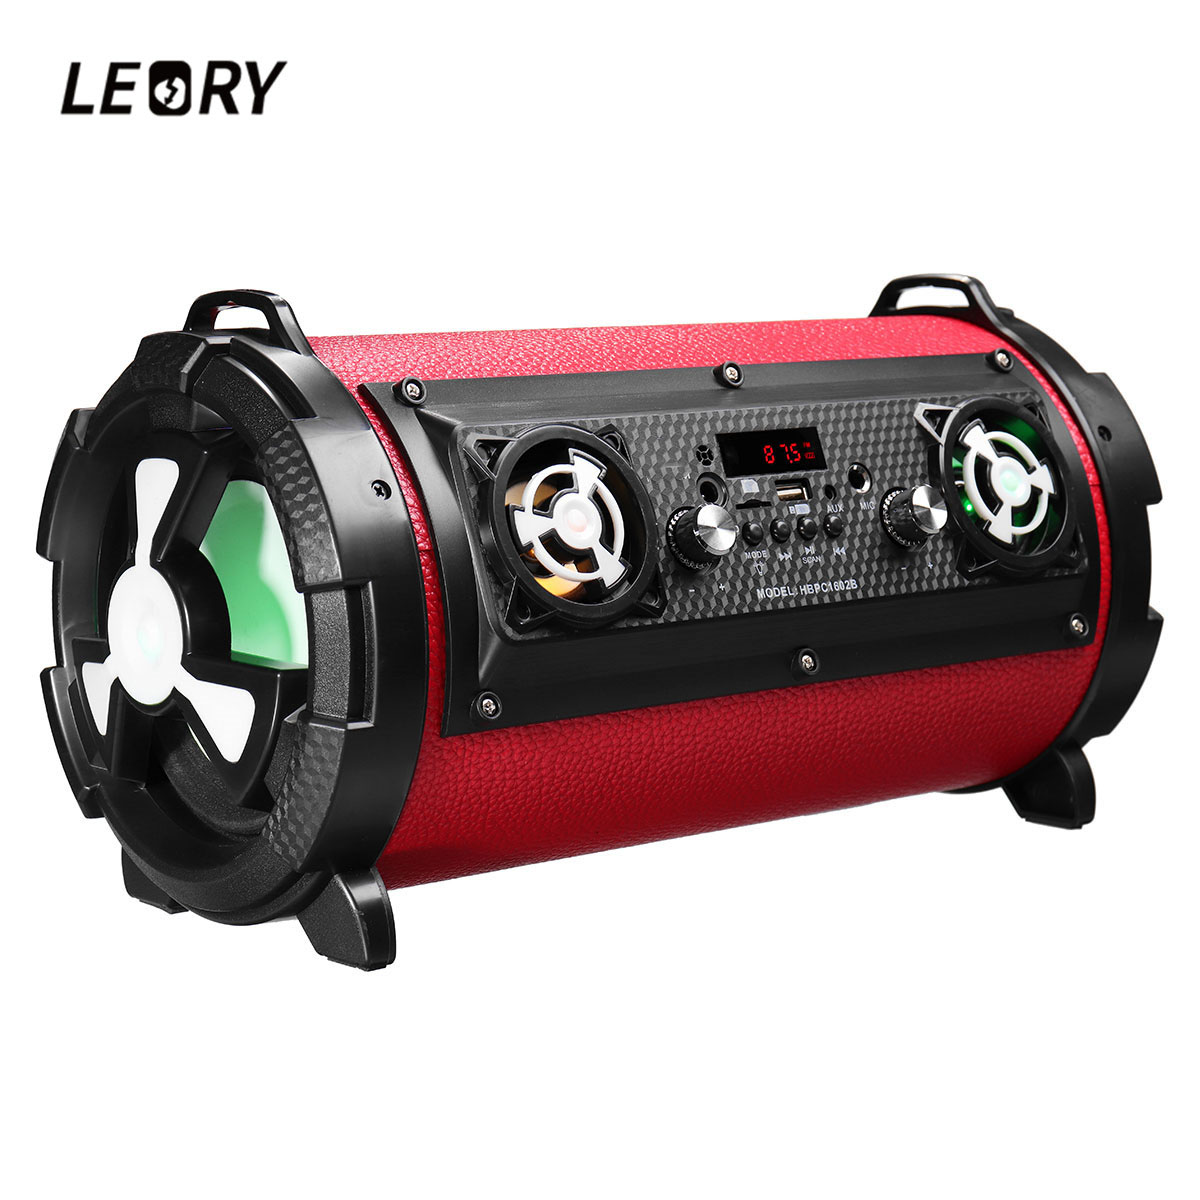 LEORY 15W Home TV Smartphones Wireless Bluetooth Speaker Portable Outdoor Subwoofer with Mic Multifunctional Large Power Speaker leory sy1602 newest outdoor portable bluetooth speaker 15w 2000mah wireless subwoofer speaker with microphone multicolor